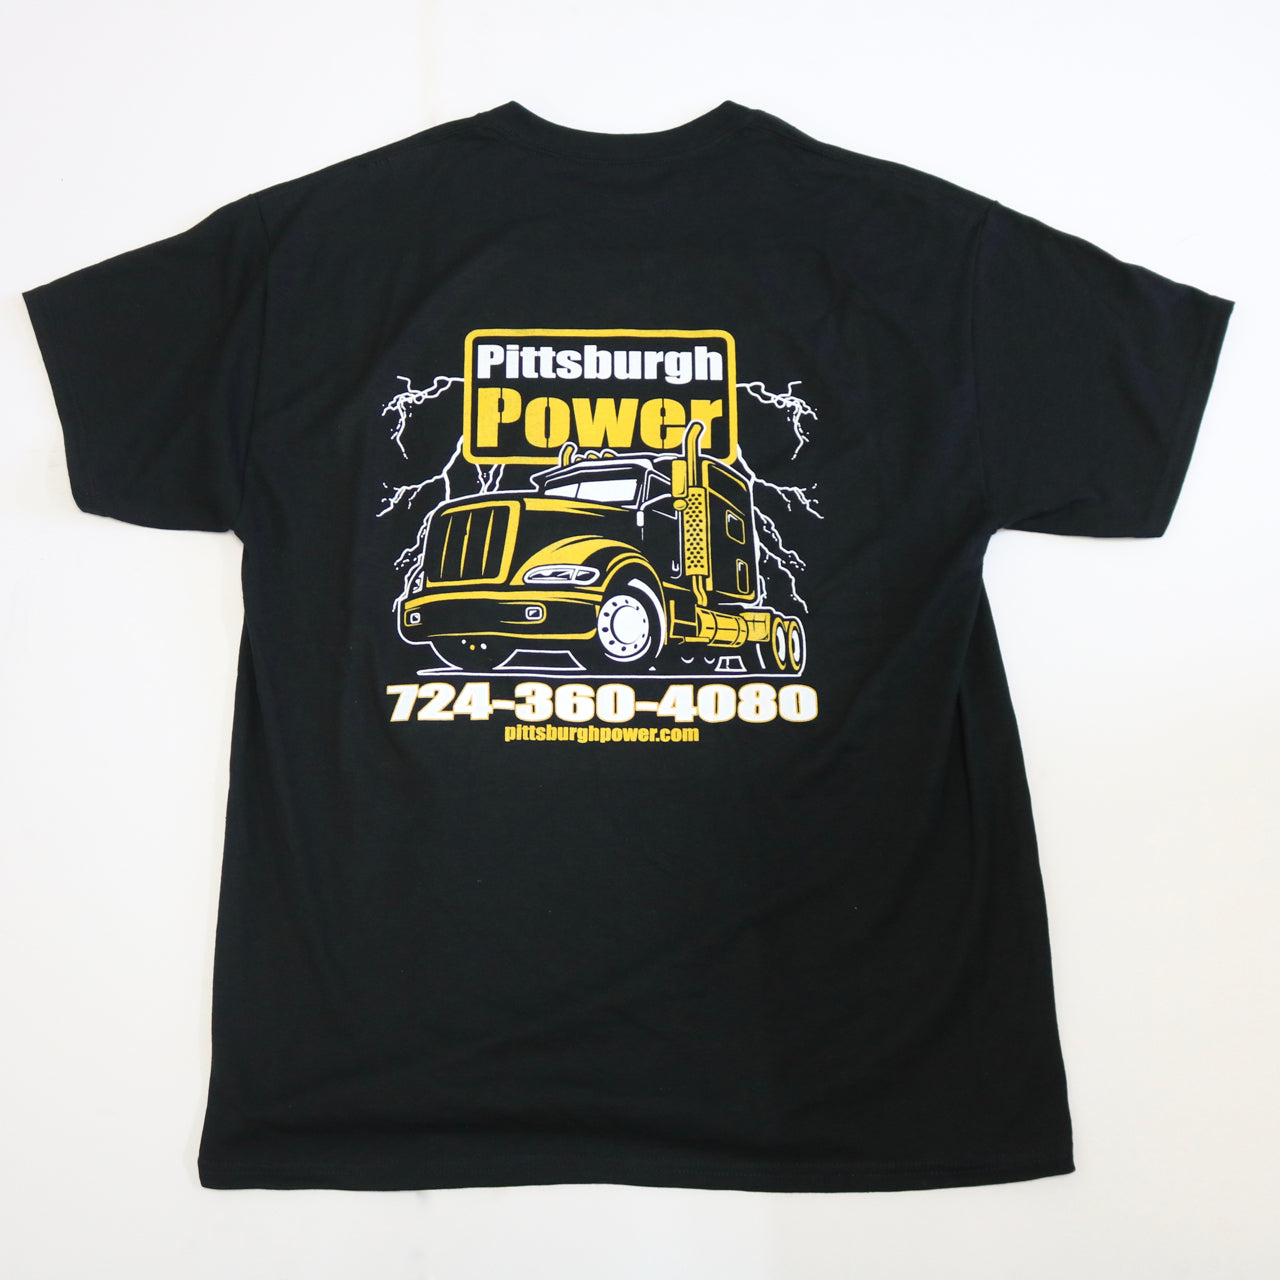 Pittsburgh Power T-Shirt